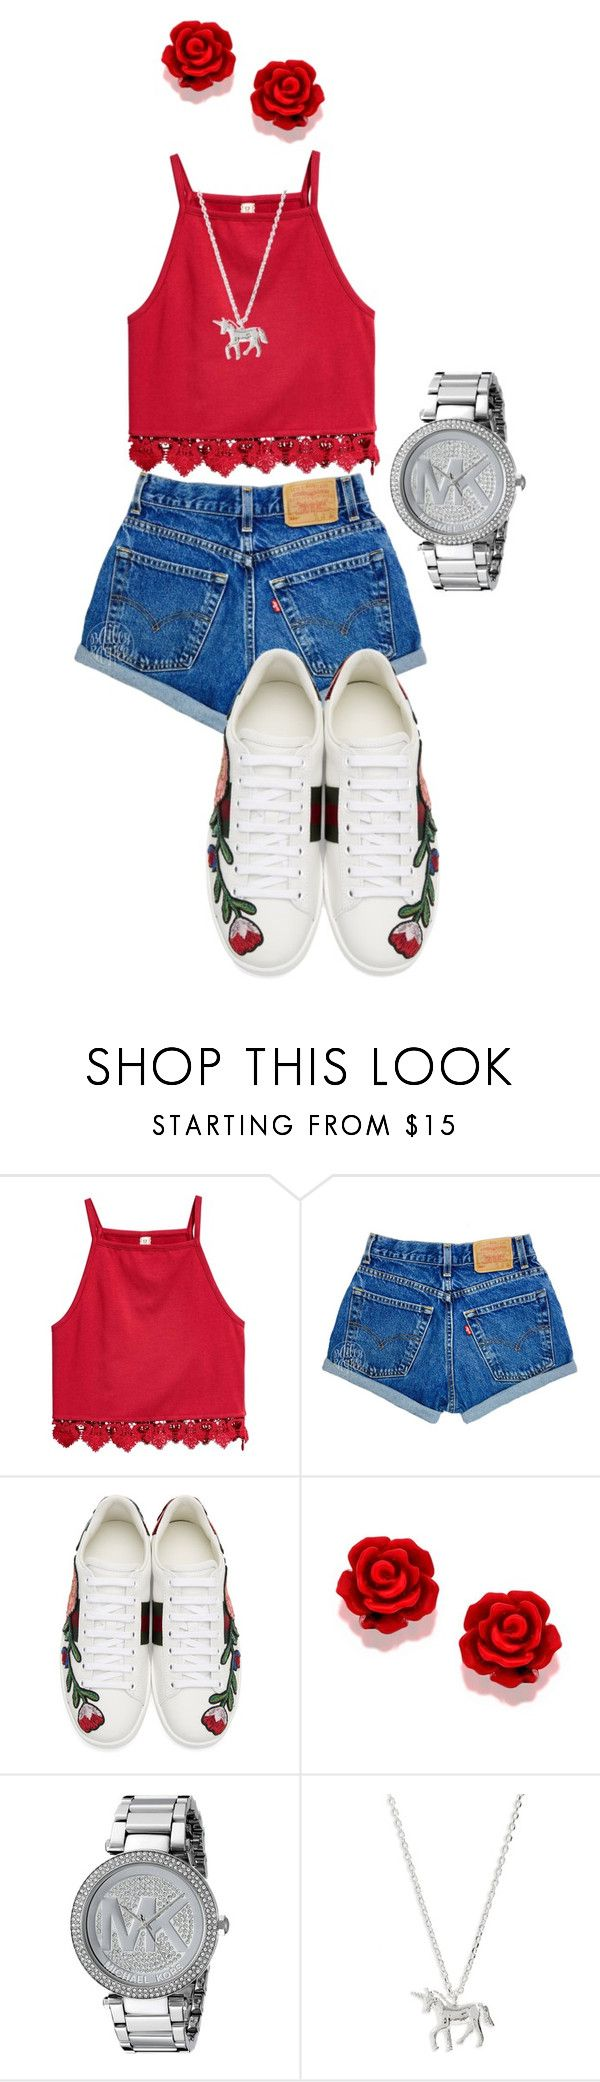 Untitled #99 by hcmad on Polyvore featuring Gucci, Michael Kors and Estella Bartlett